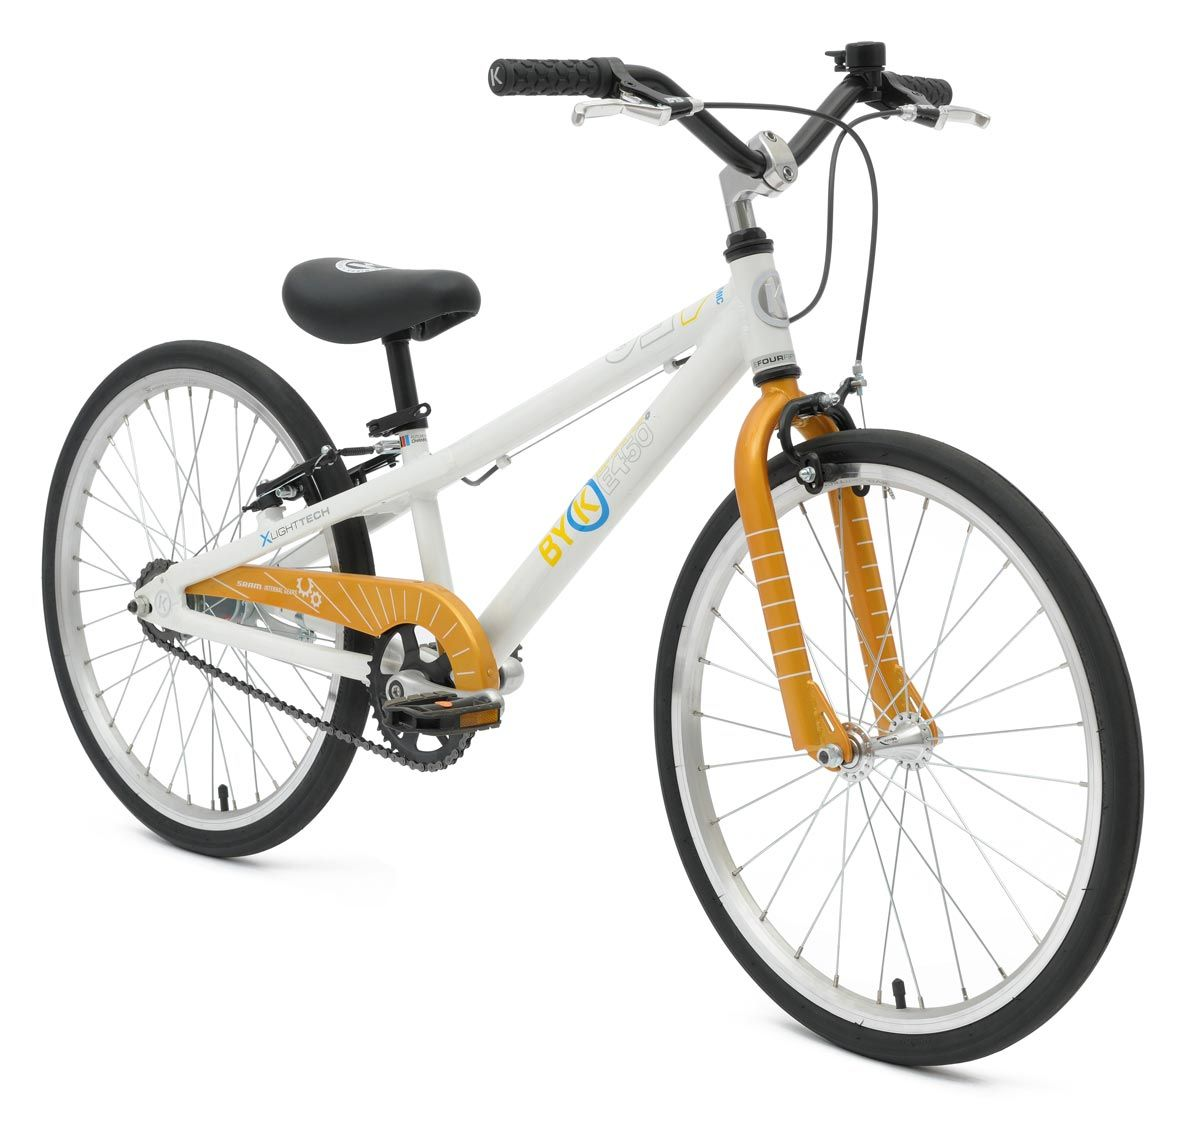 E 450x2i Geared Kids Bike For 5 To 8 Year Olds Our 2xi Models Use